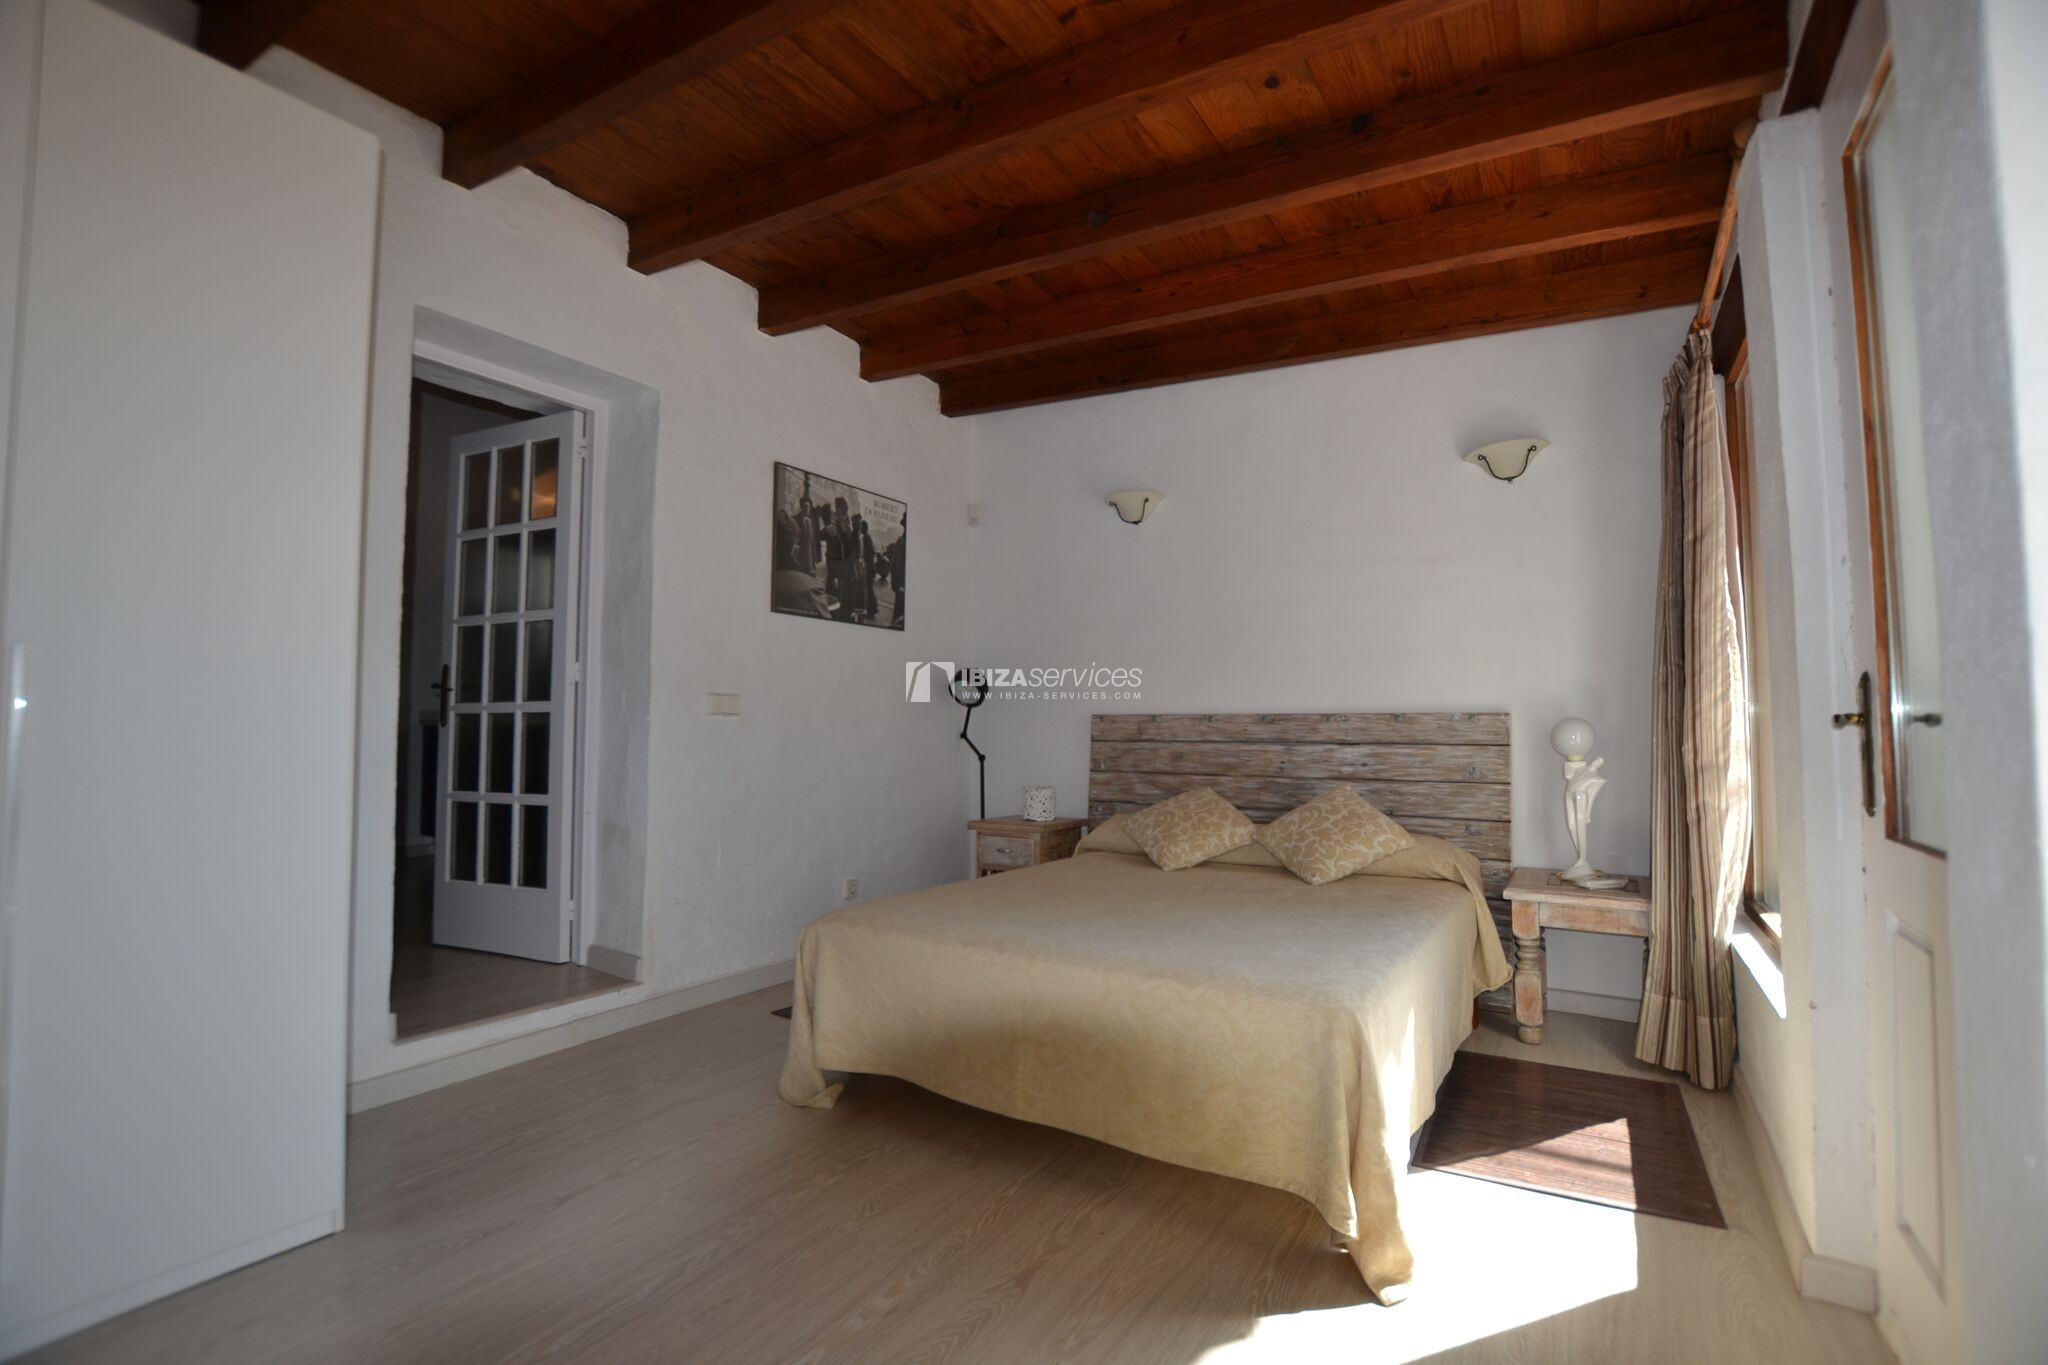 Charming house weekly rental San jordi perspectiva 4